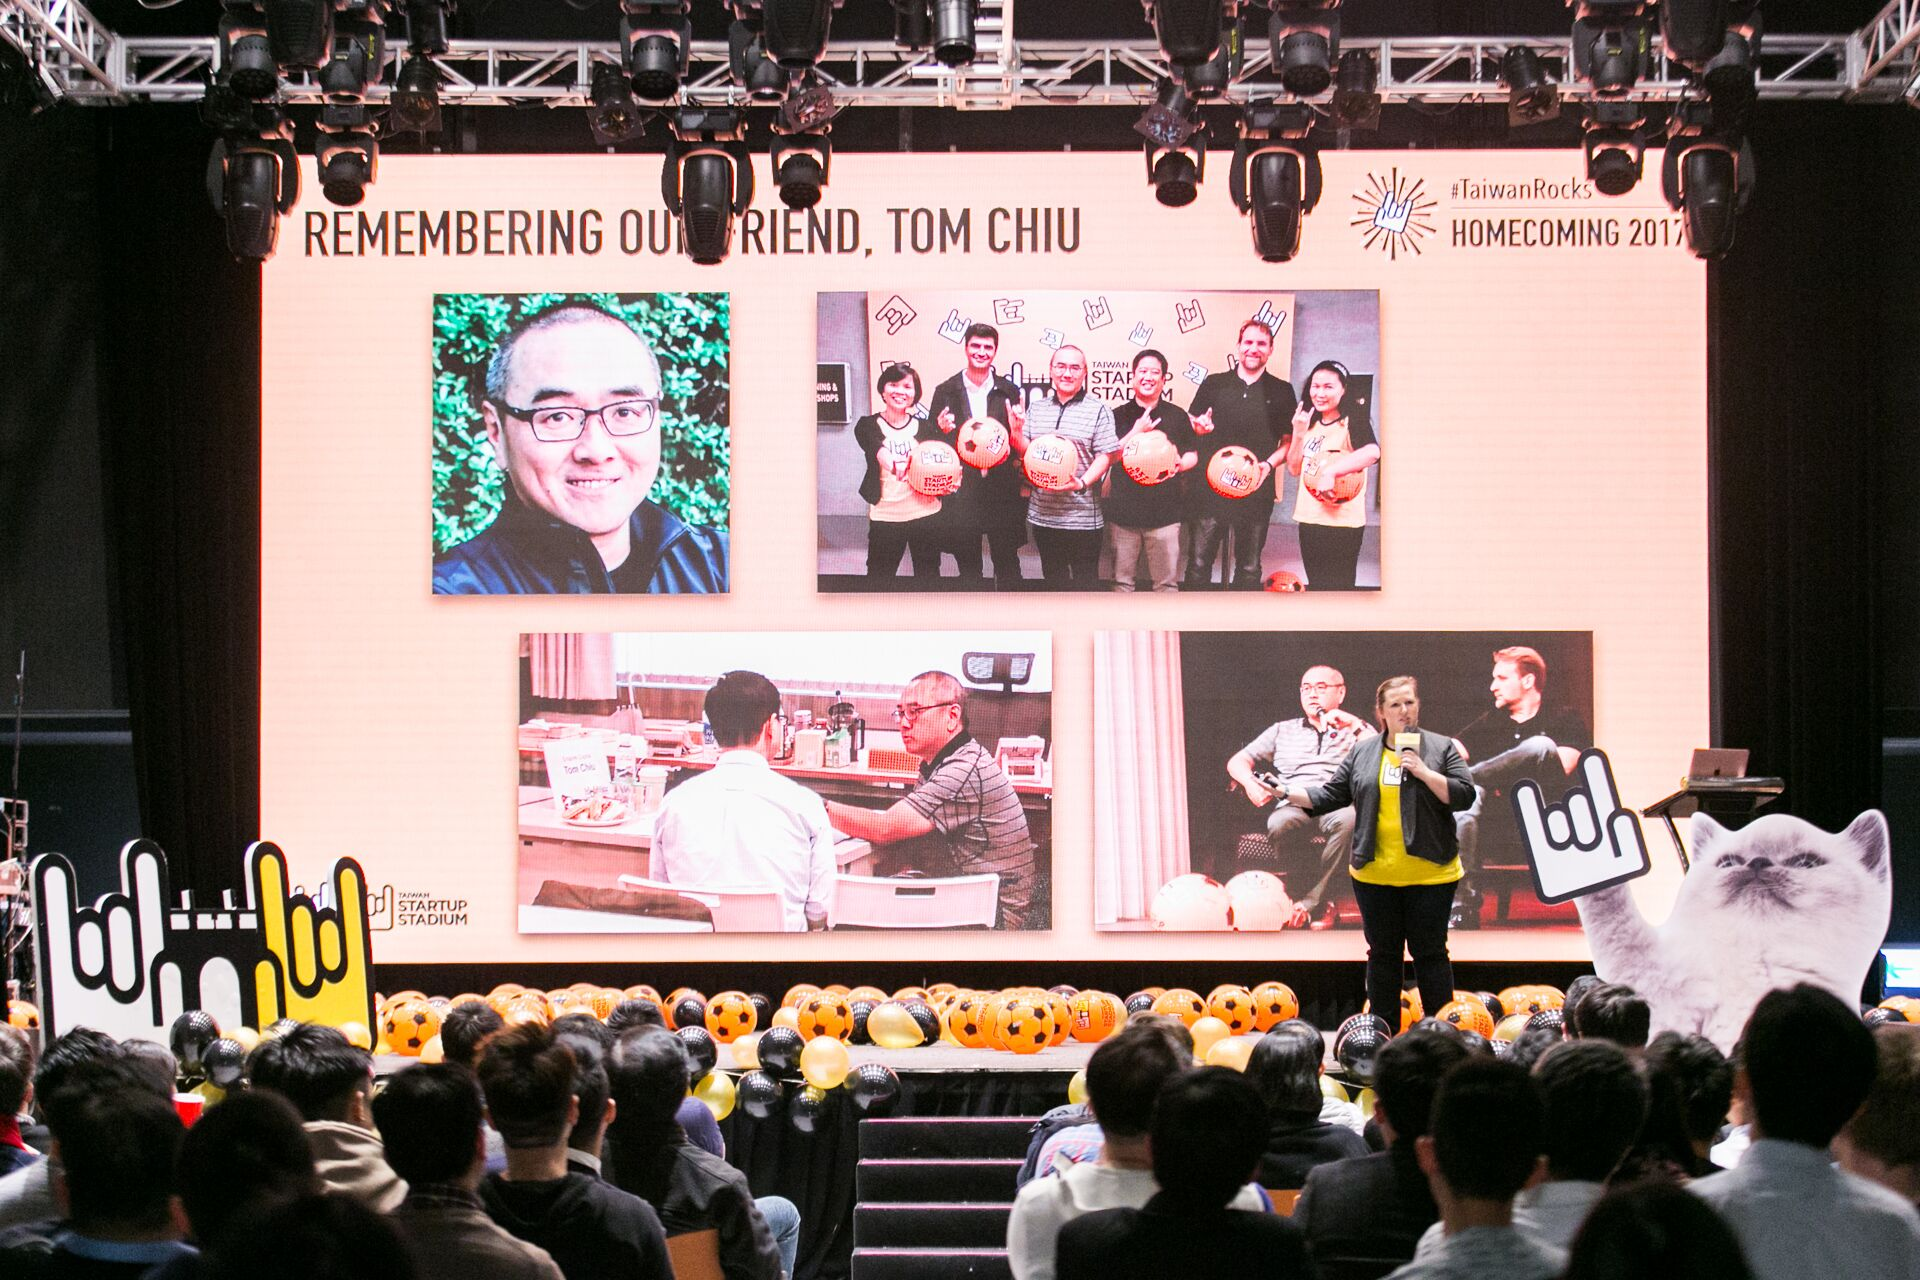 In memoriam: Our friend & investor, Tom Chiu